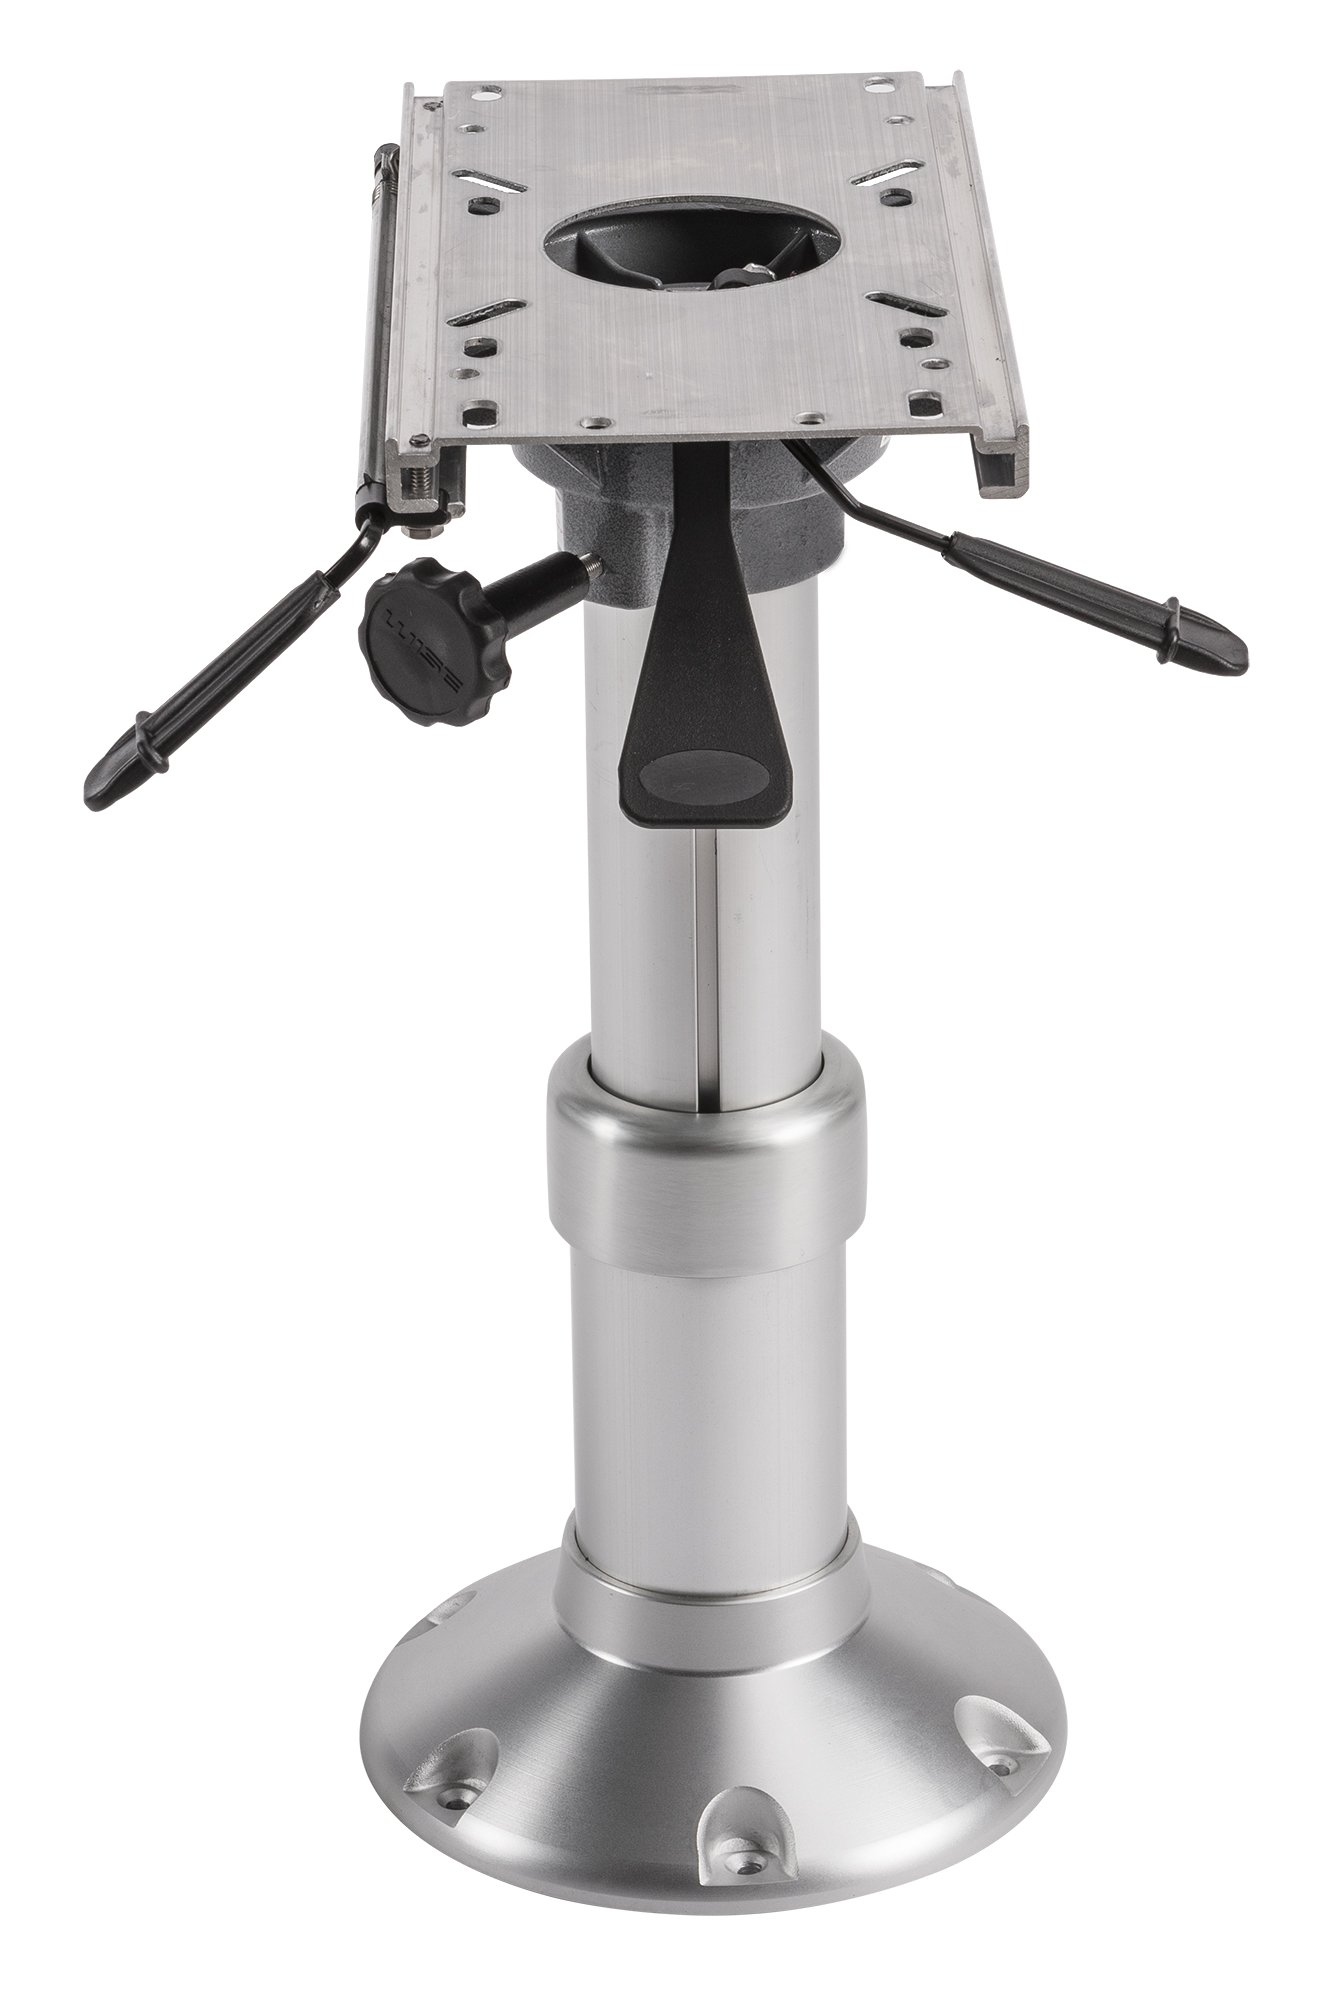 Wise 8WP145 Heavy Duty Mainstay Air Power Pedestal with Locking Swivel and Slide by Wise